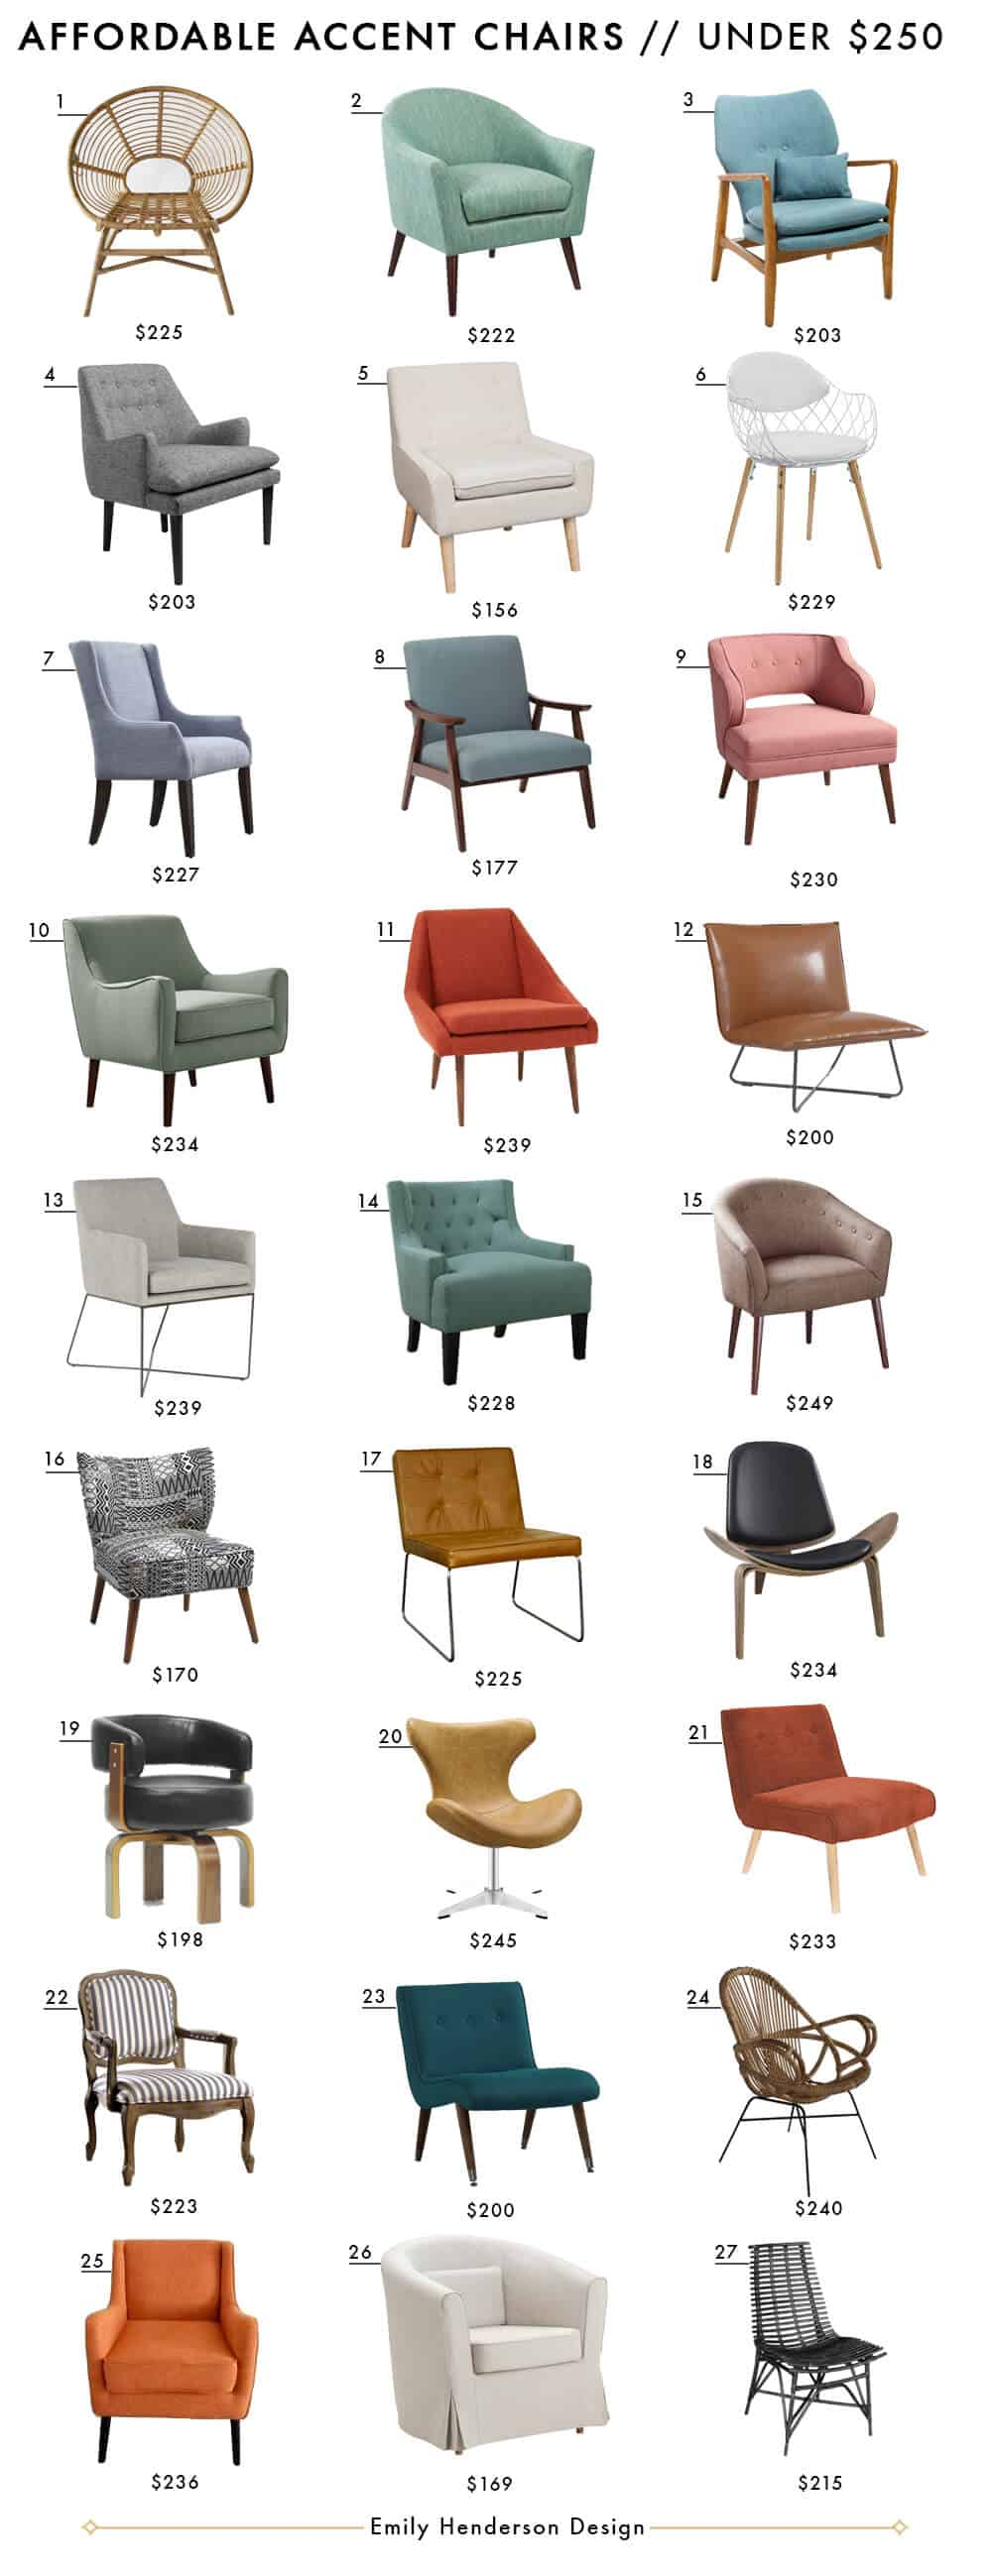 Alert Eight Or Nine Home Computer Chair Office Chairs White Lifting Backrest Stool Rotary Chair Modern Fashion Simplicity High Quality Materials Office Furniture